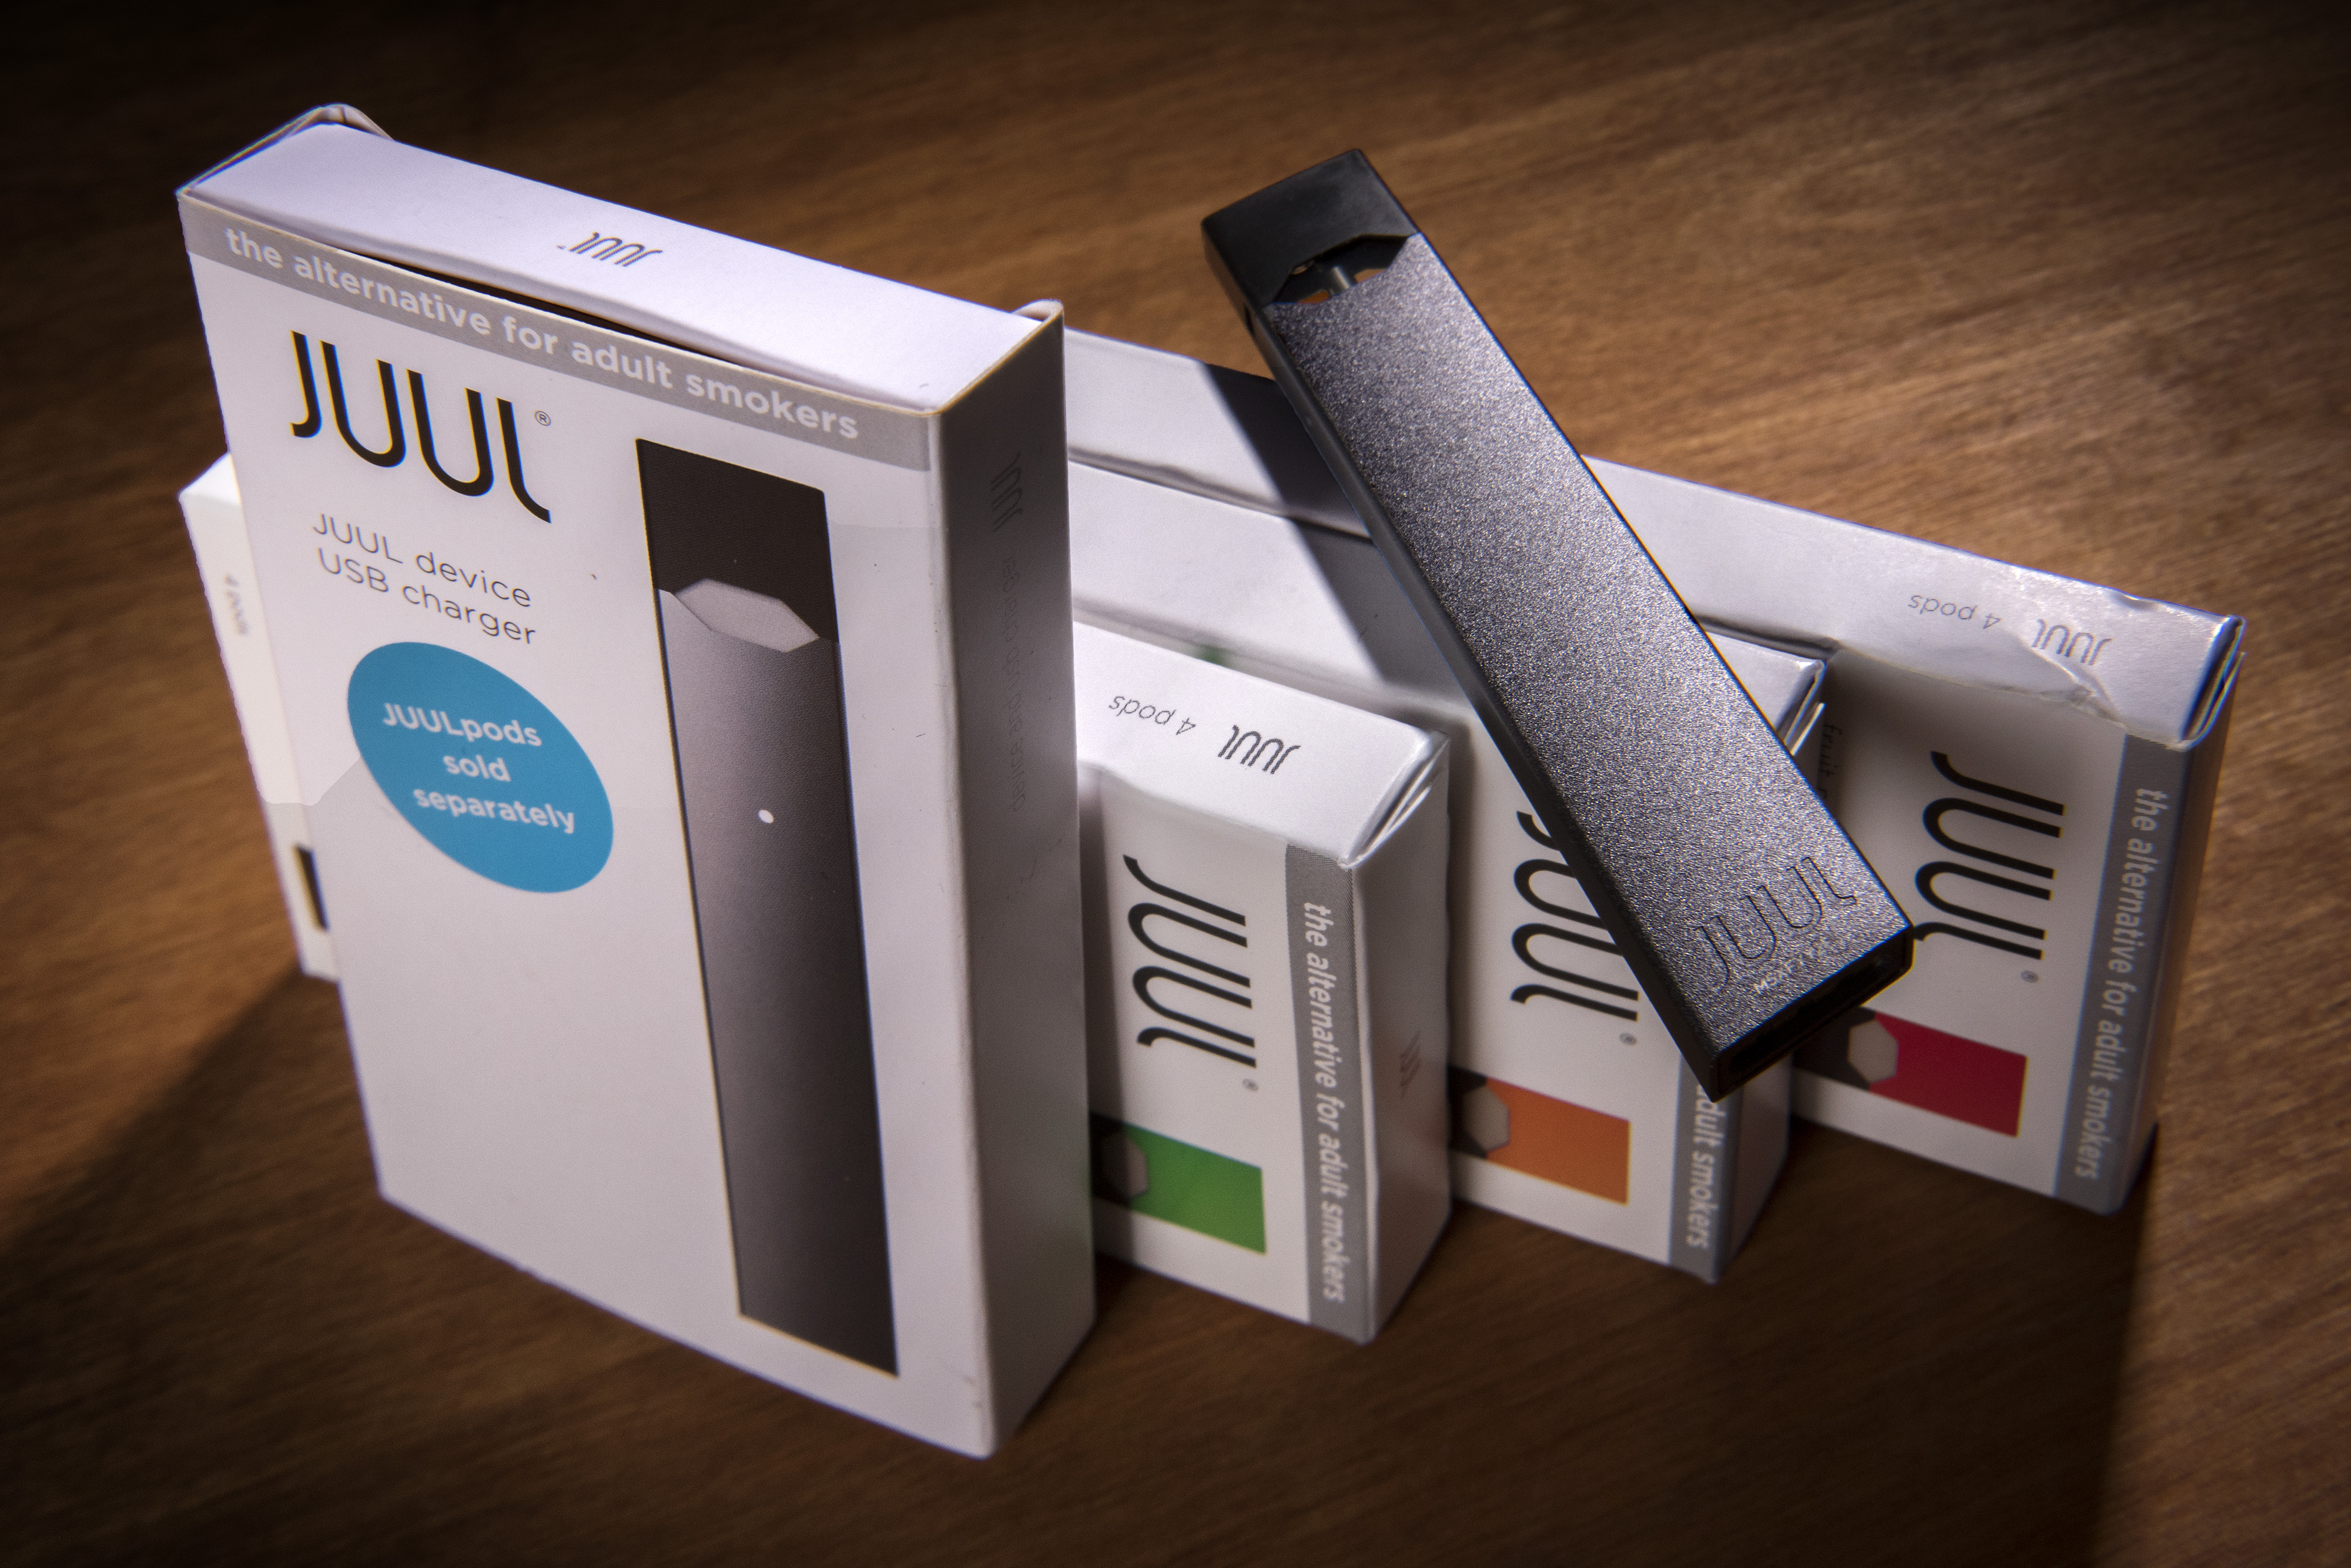 A Juul vaping system with accessory pods in varying flavors on May, 02, 2018 in Washington, DC.